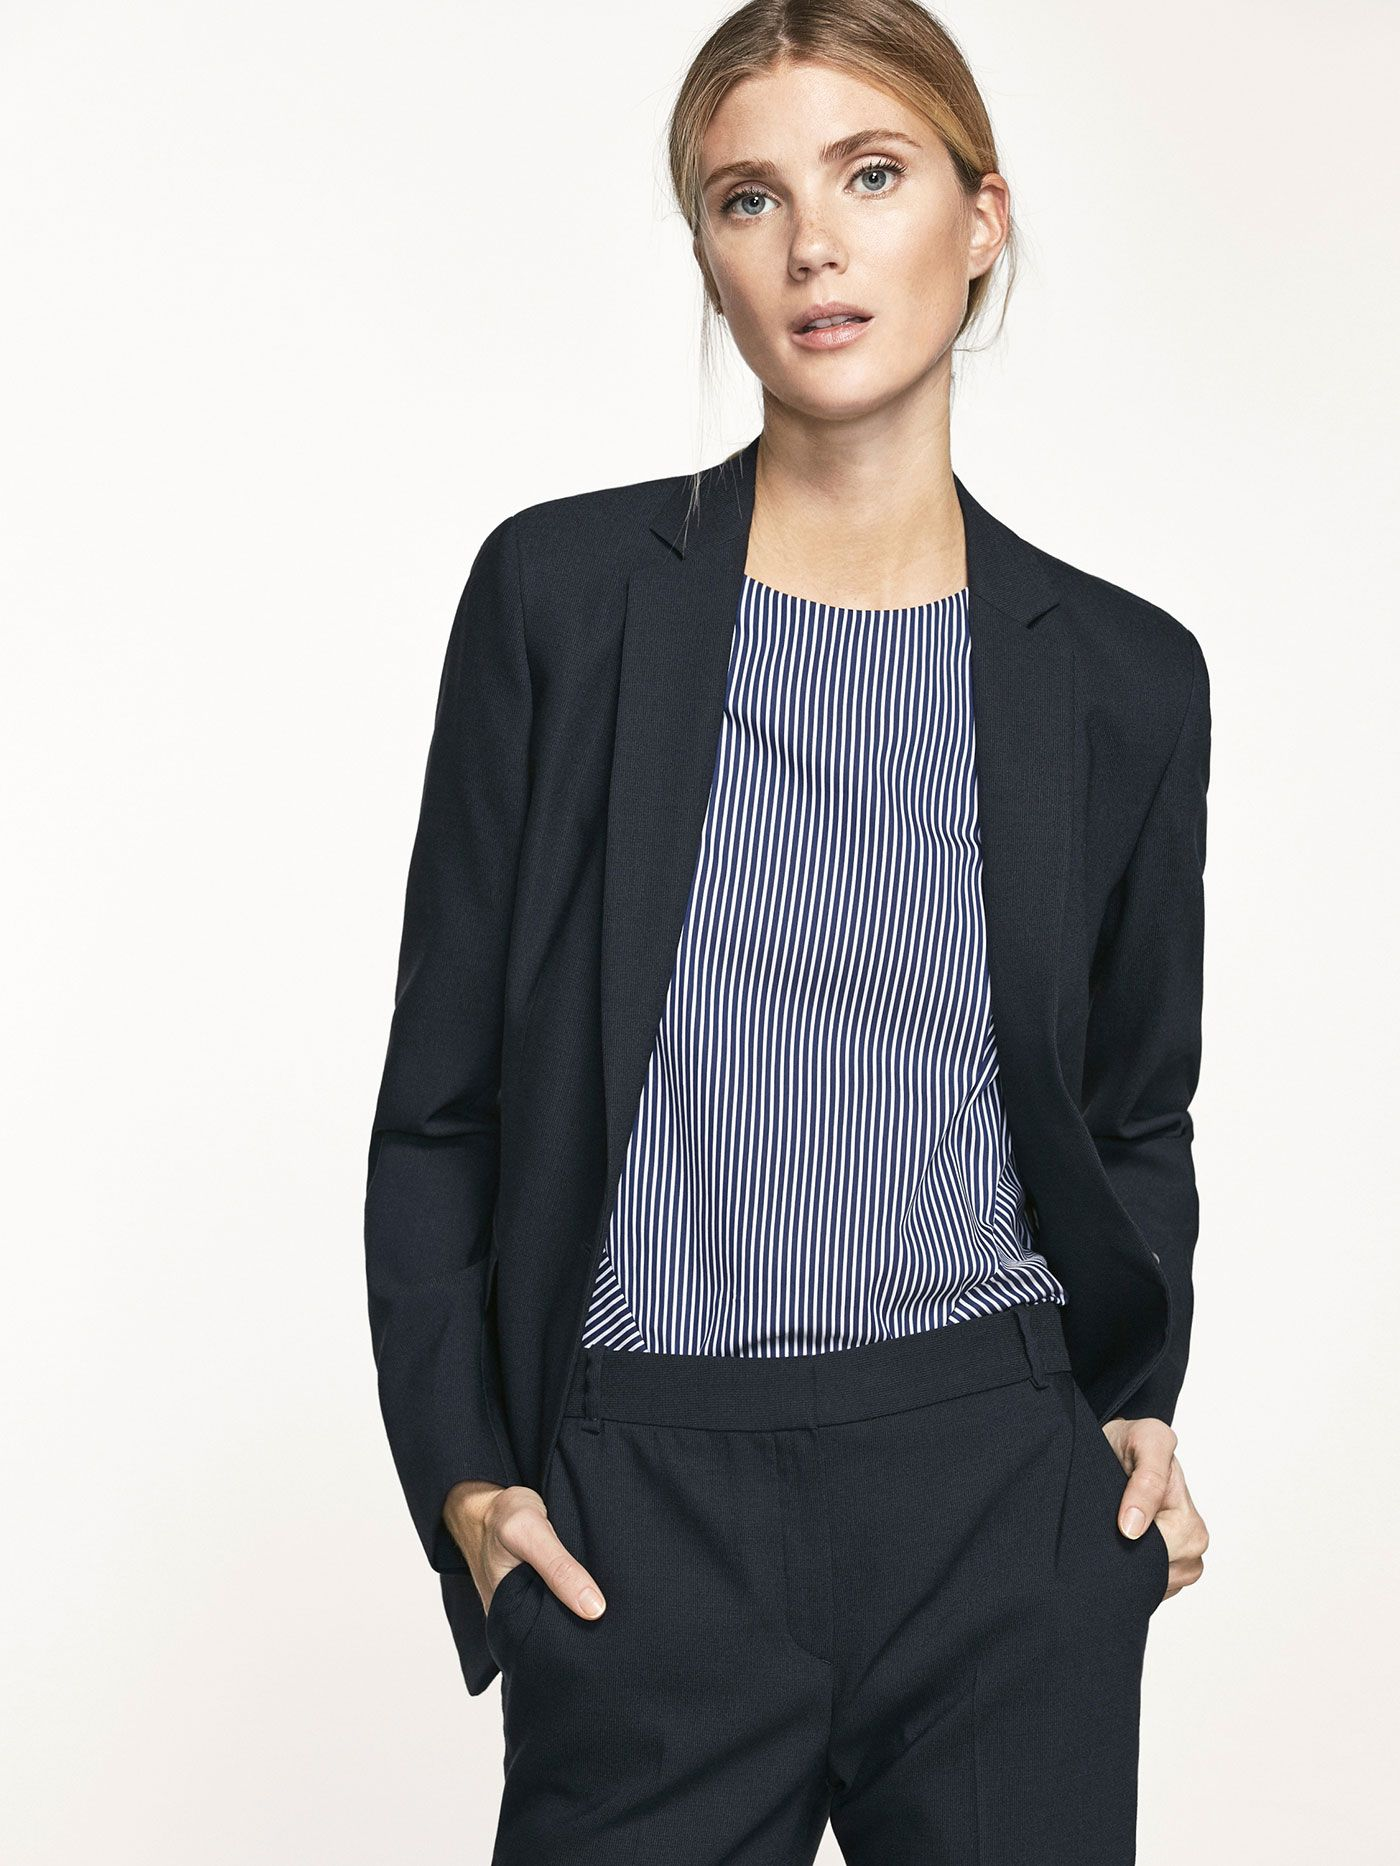 Autumn Winter 2017 Women´s NAVY BLUE SUIT JACKET at Massimo Dutti for 149.